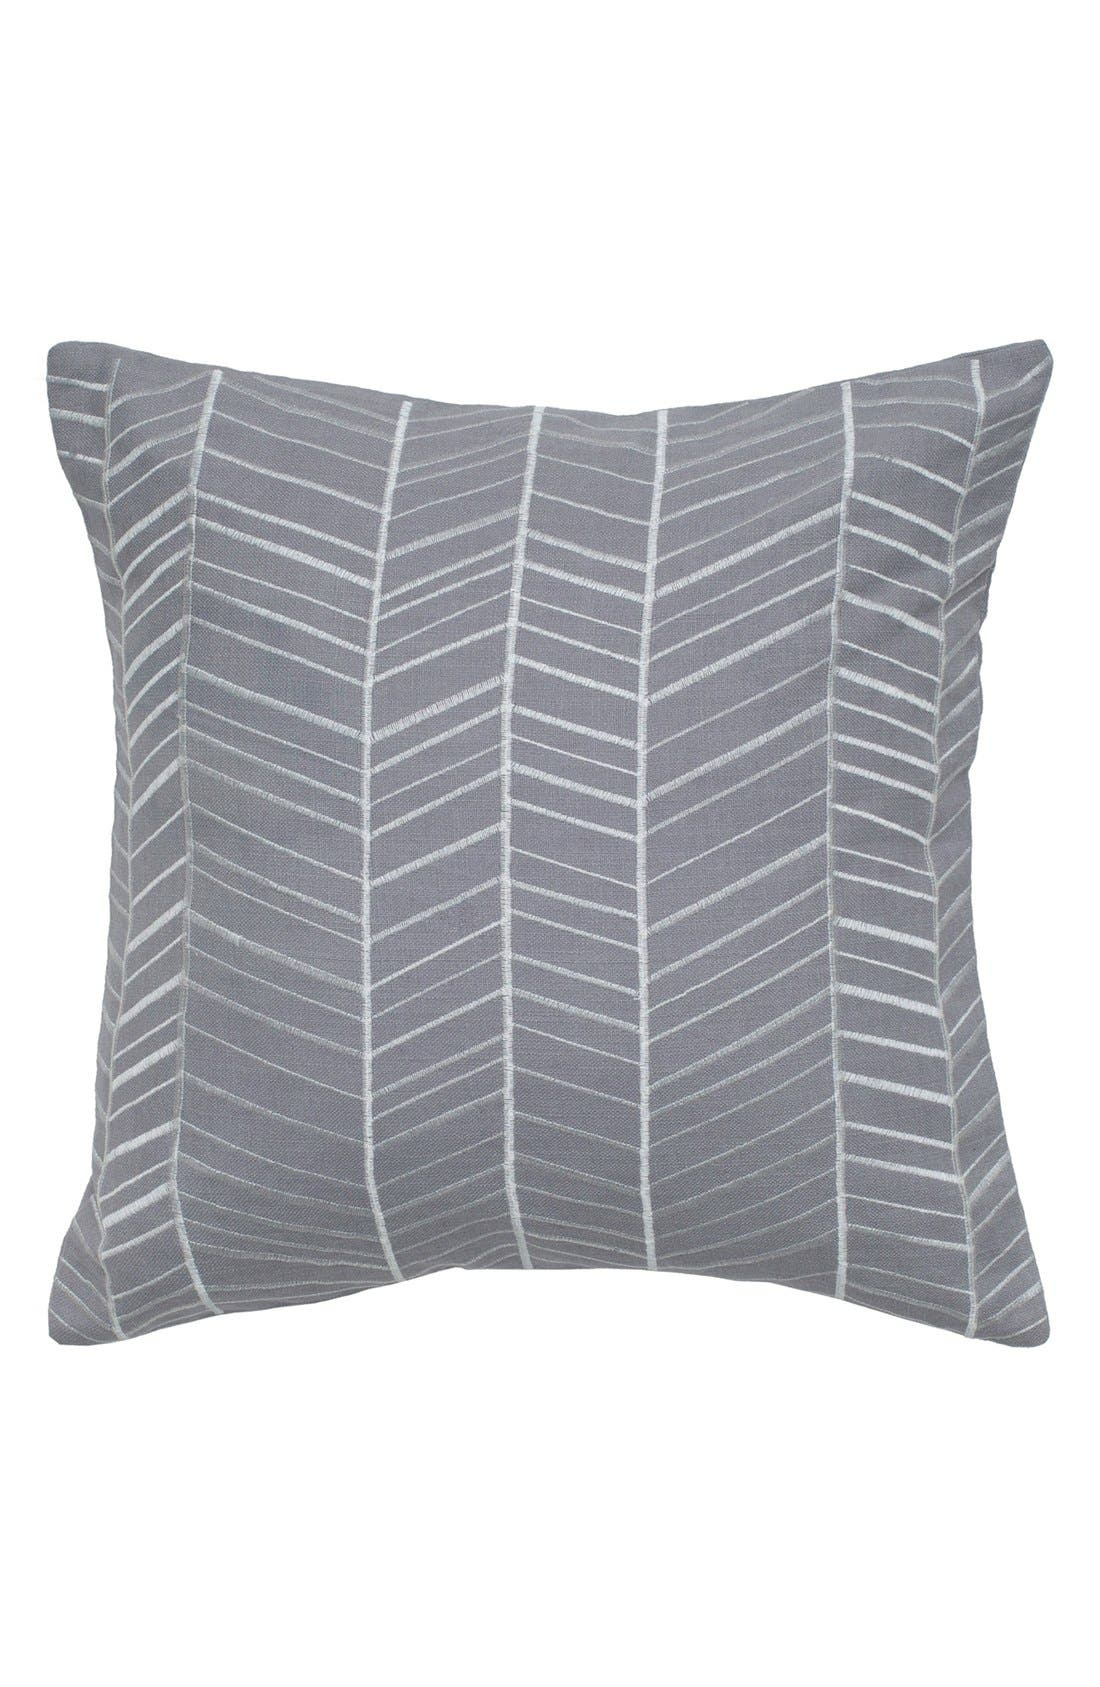 Alternate Image 1 Selected - Rizzy Home Chevron Pillow